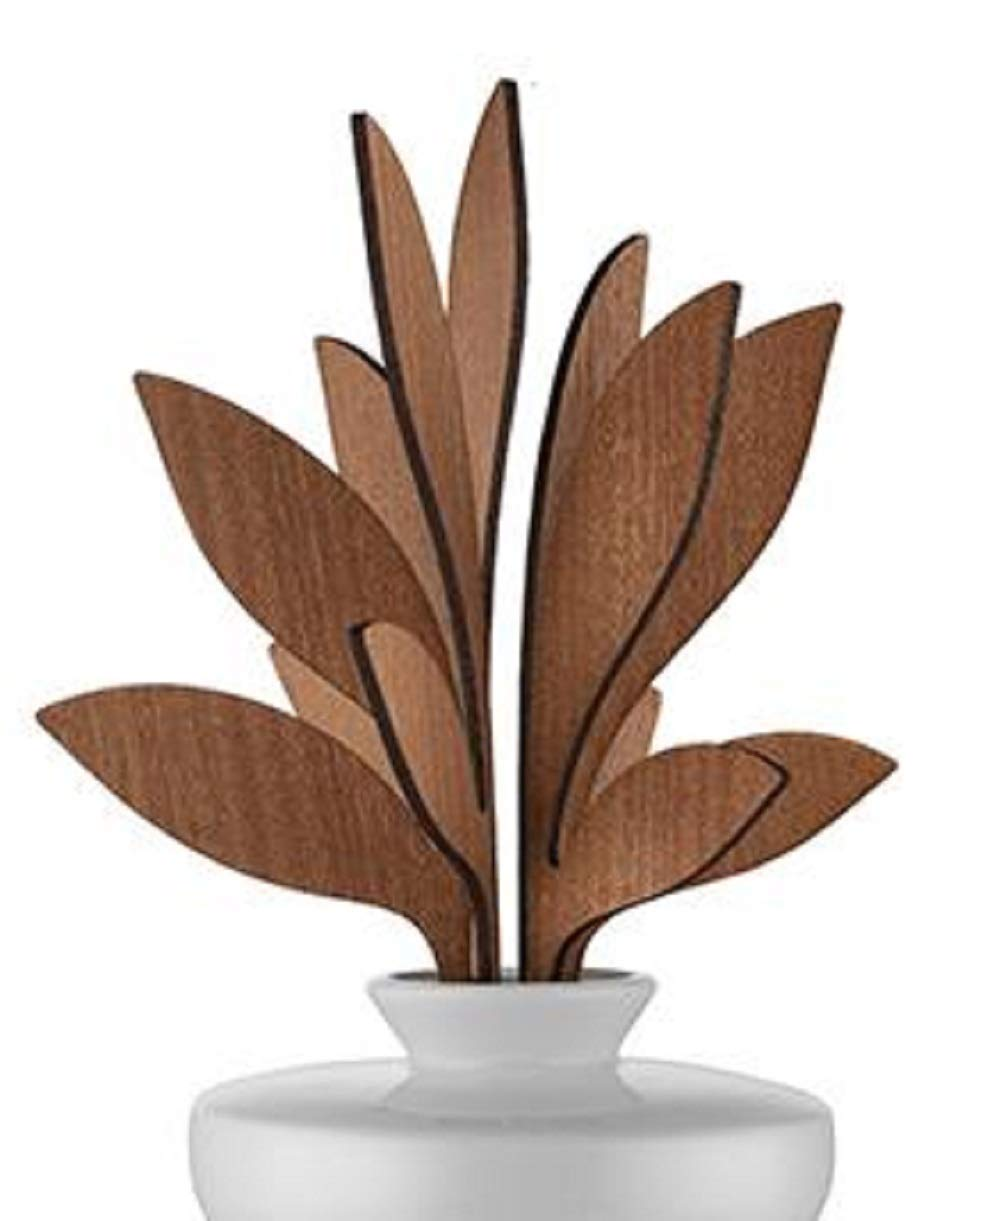 Alessi The Five Seasons Ahhh Replacement Diffuser Leaves, Mahogany Wood, by Marcel Wanders